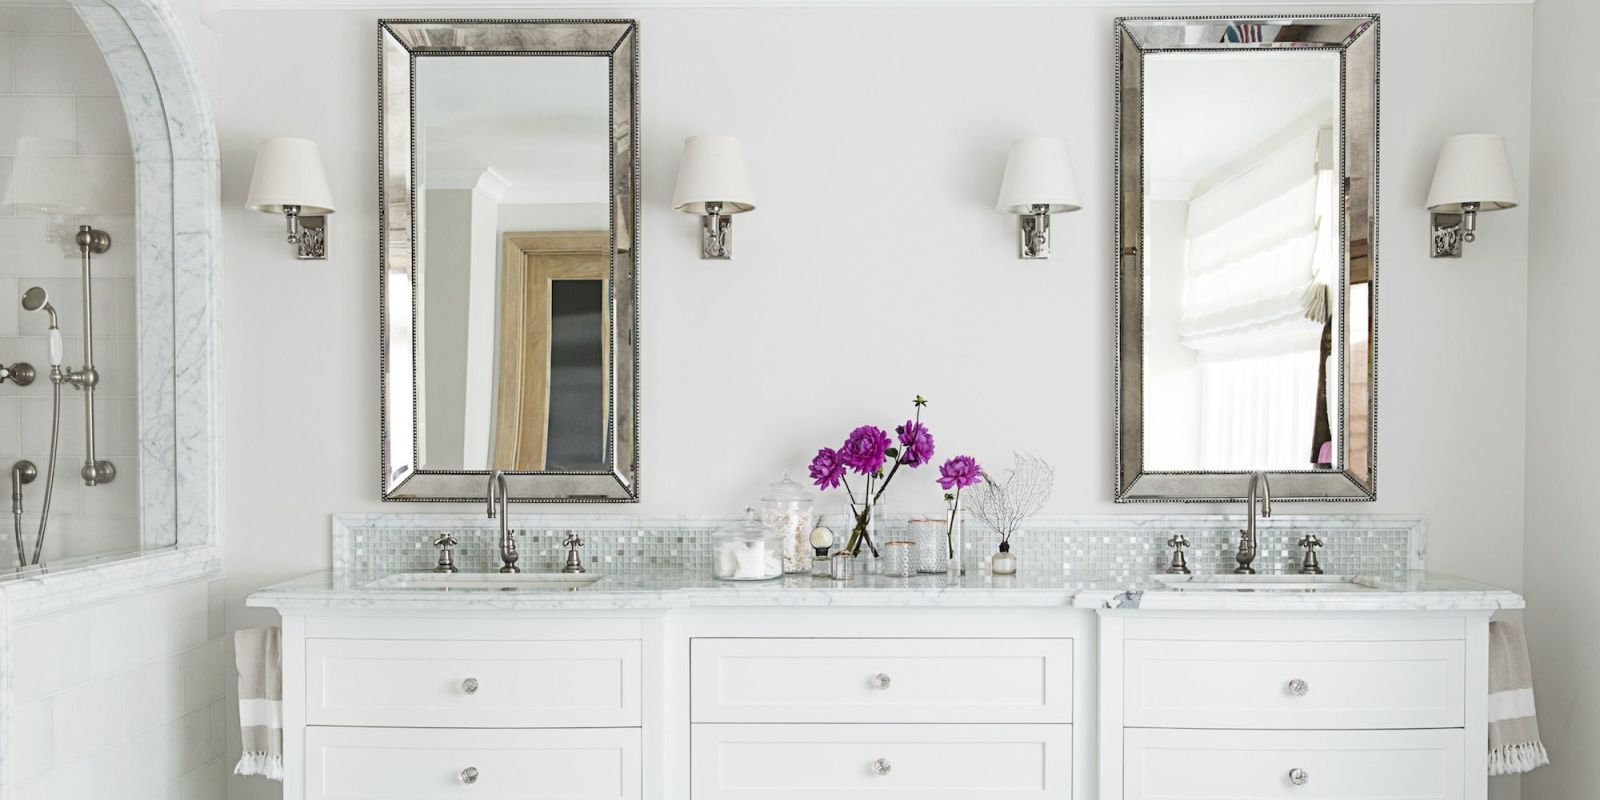 A Few Key Design Choices Can Update The Vibe Of Your Bathroom In A Snap.  Want A Clean, Modern Look? All Over White Does The Trick. Use Colorful  Accents Like ...